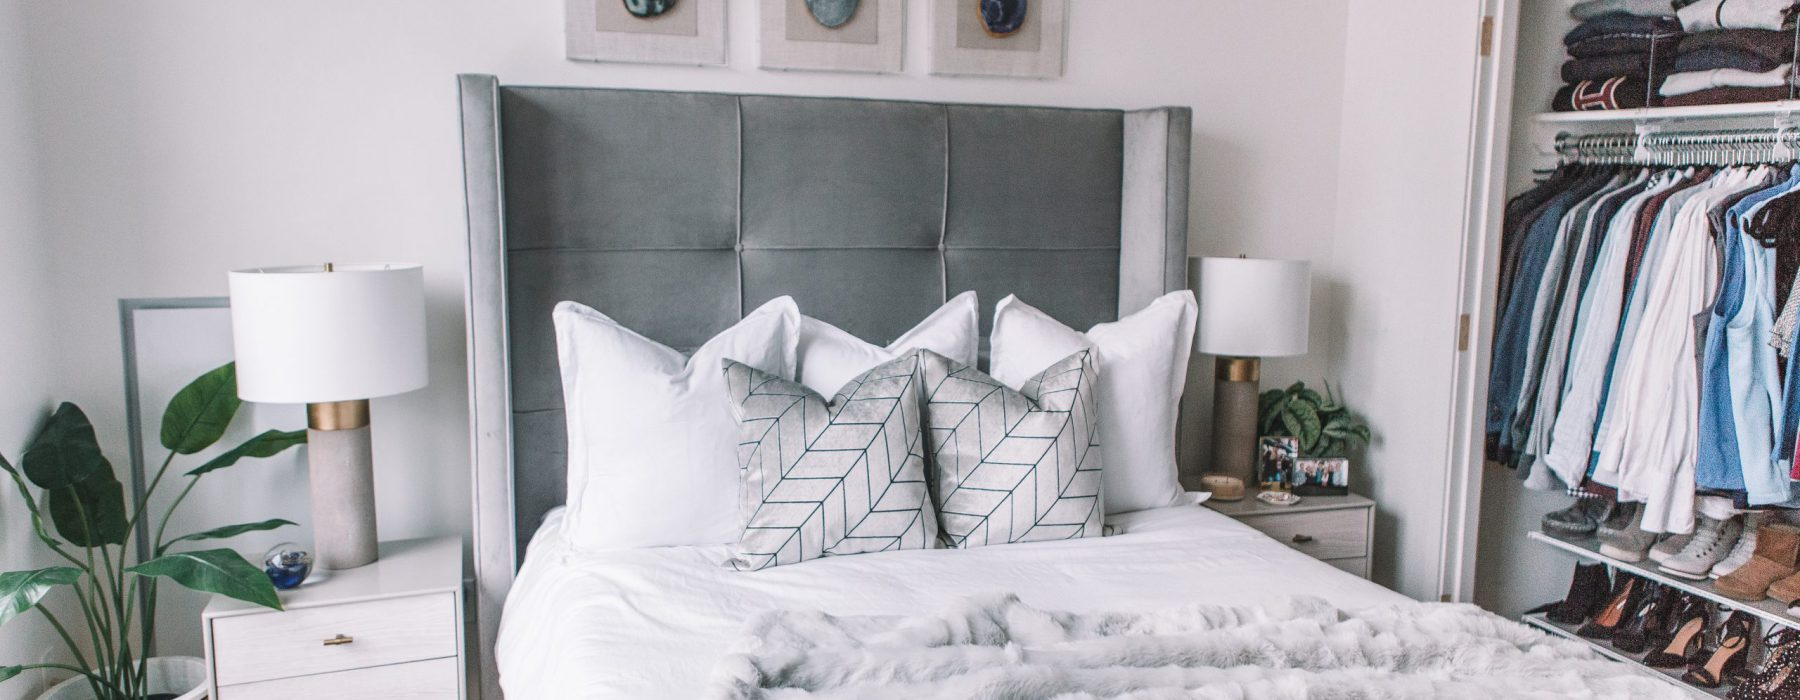 Crushing on: Decorating with Faux Fur in the Bedroom